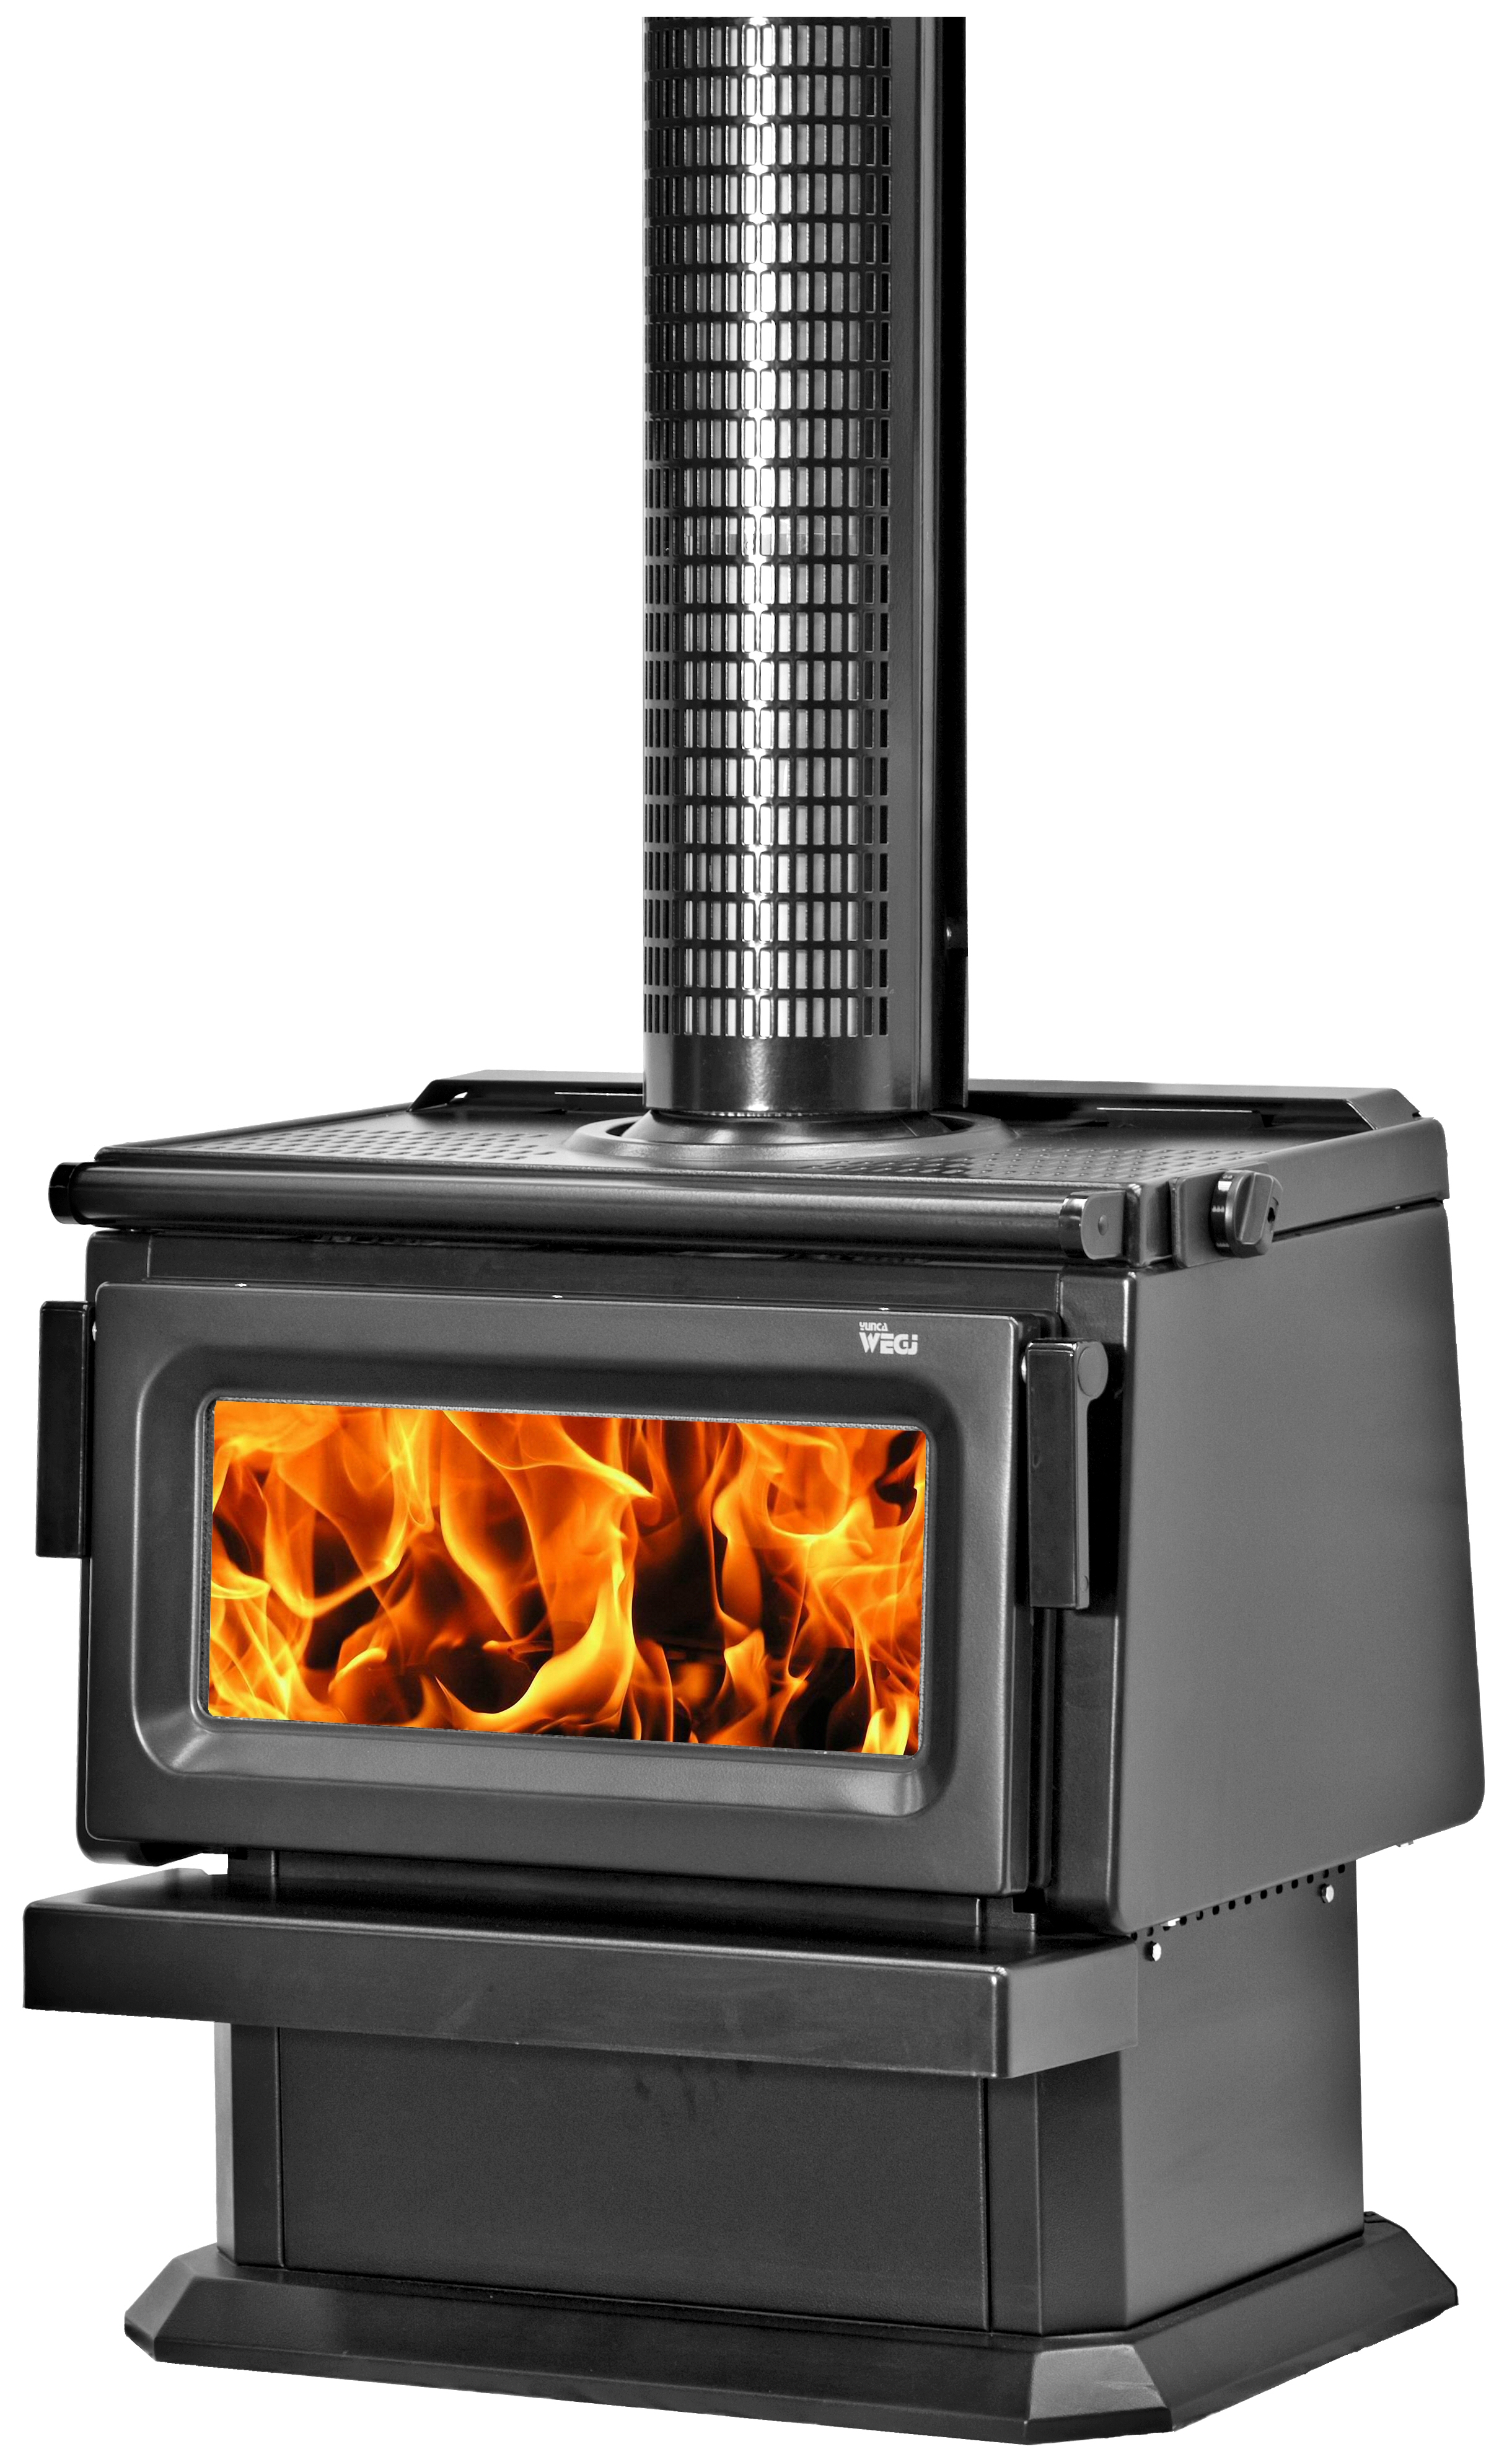 Wegj - our most powerful wood burner, pumping out the heat